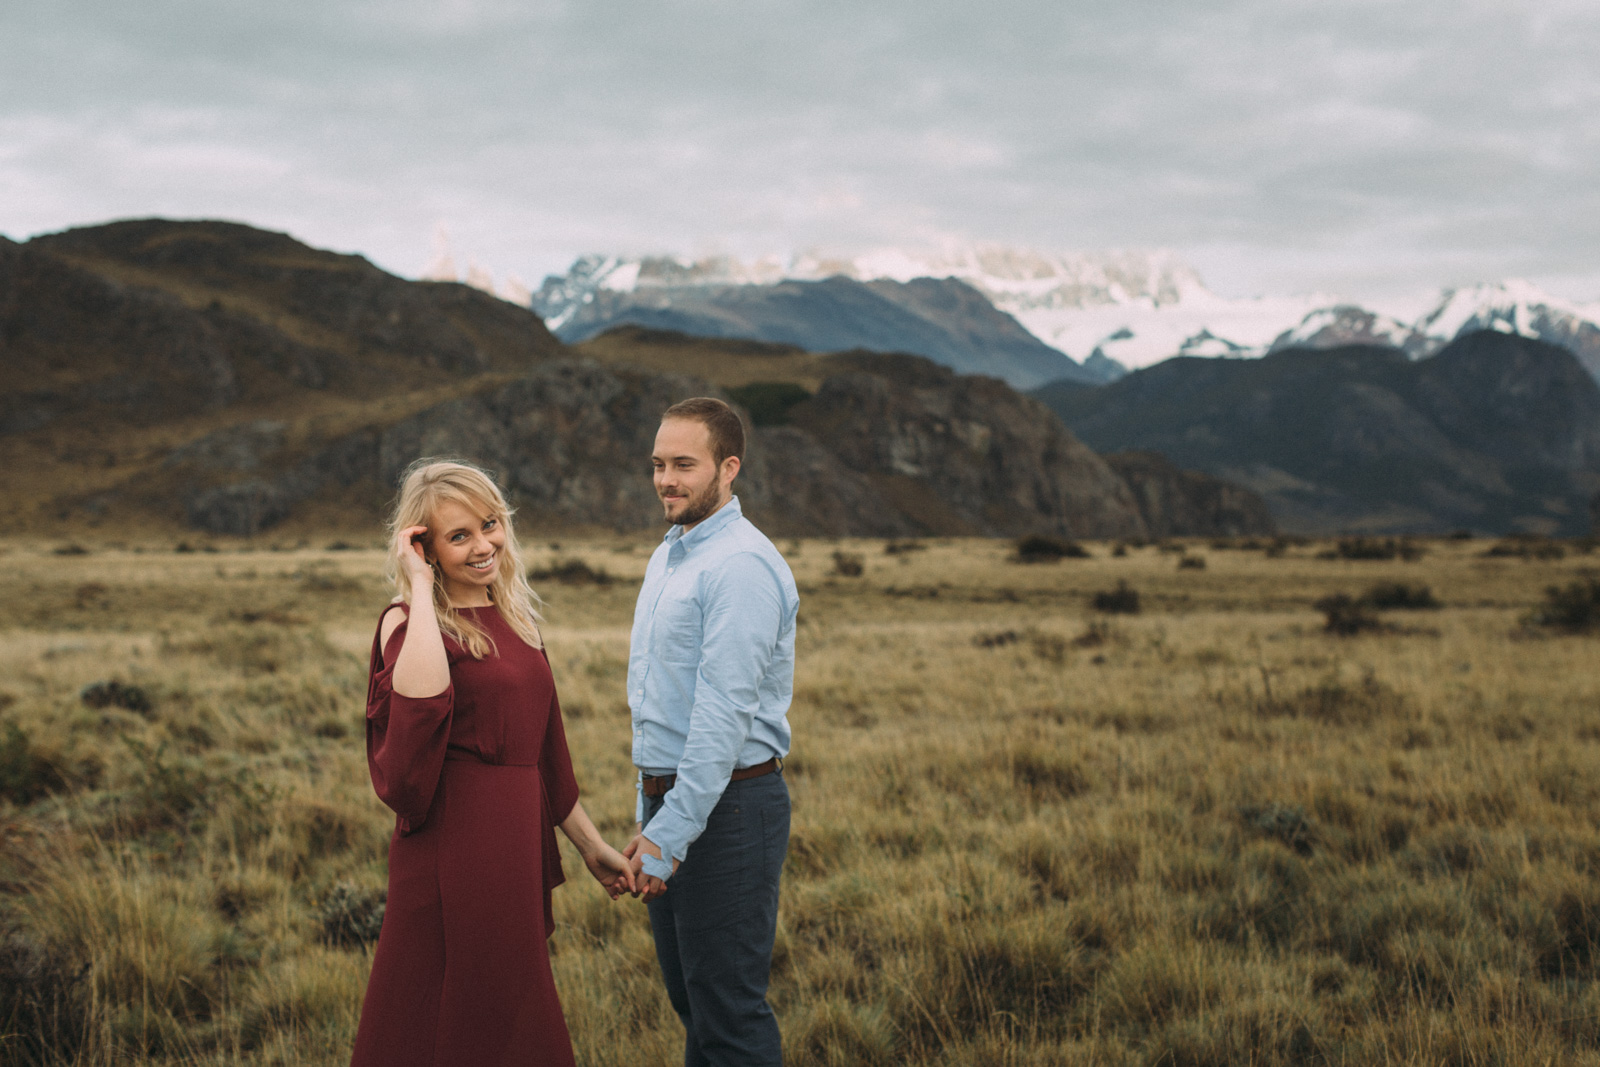 Patagonia-engagement-photography-in-El-Chalten-Argentina-by-lifestyle-photographer-Sam-Wong-of-Artanis-Collective_34.jpg